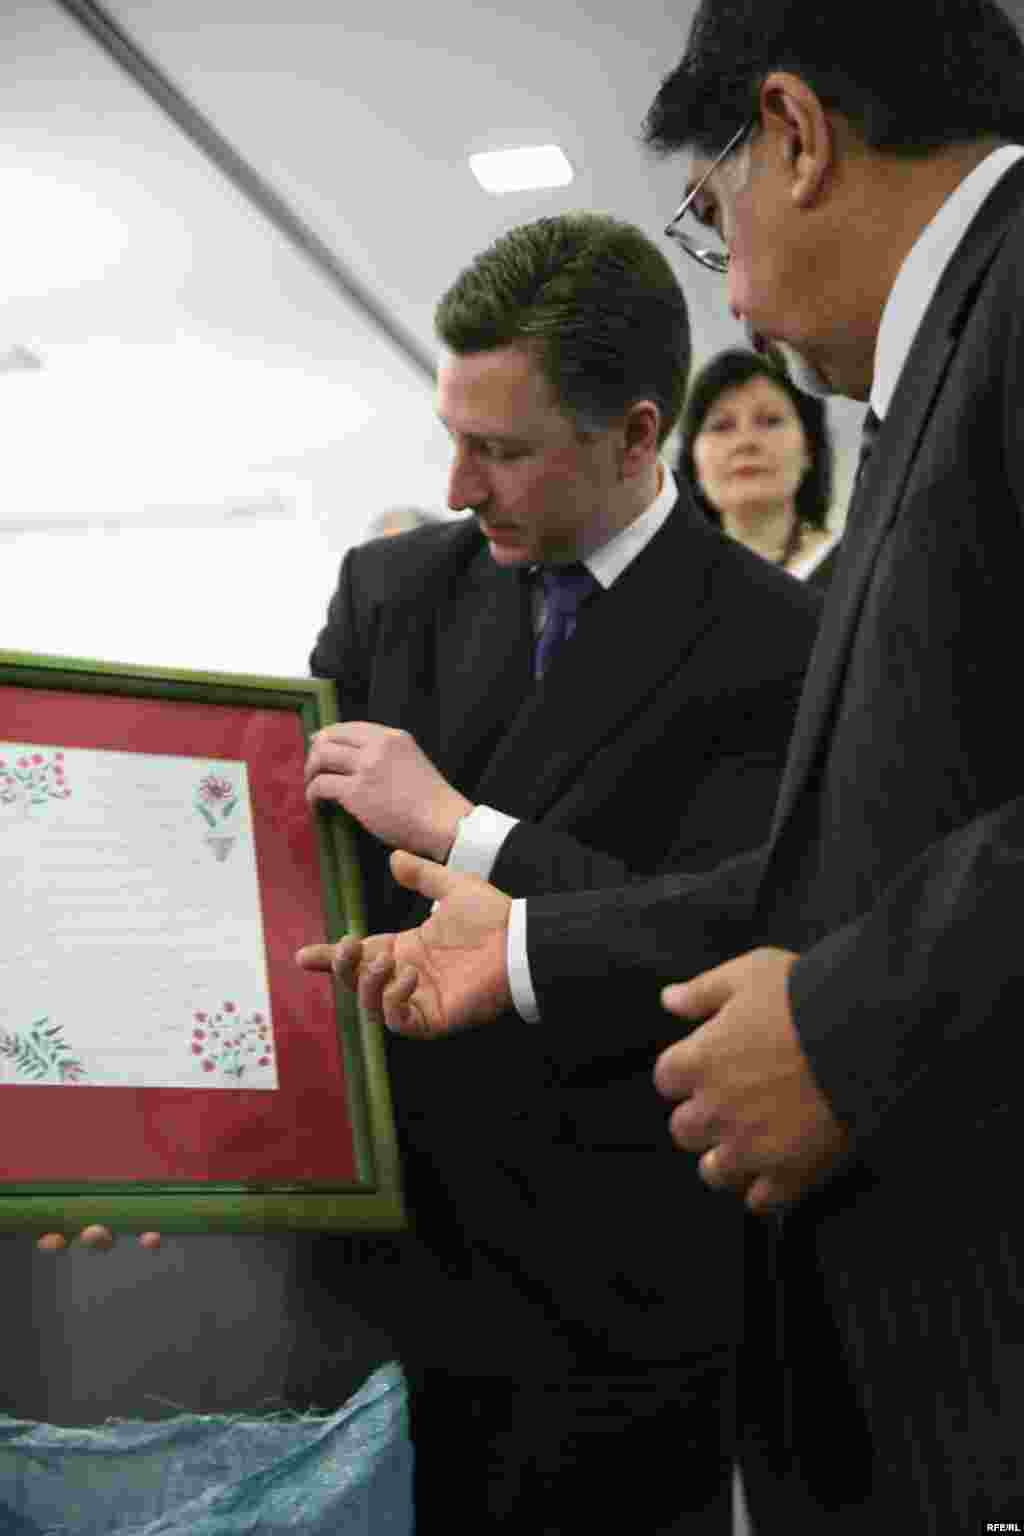 The Ambassador is presented with a framed letter from a Radio Free Afghanistan listener